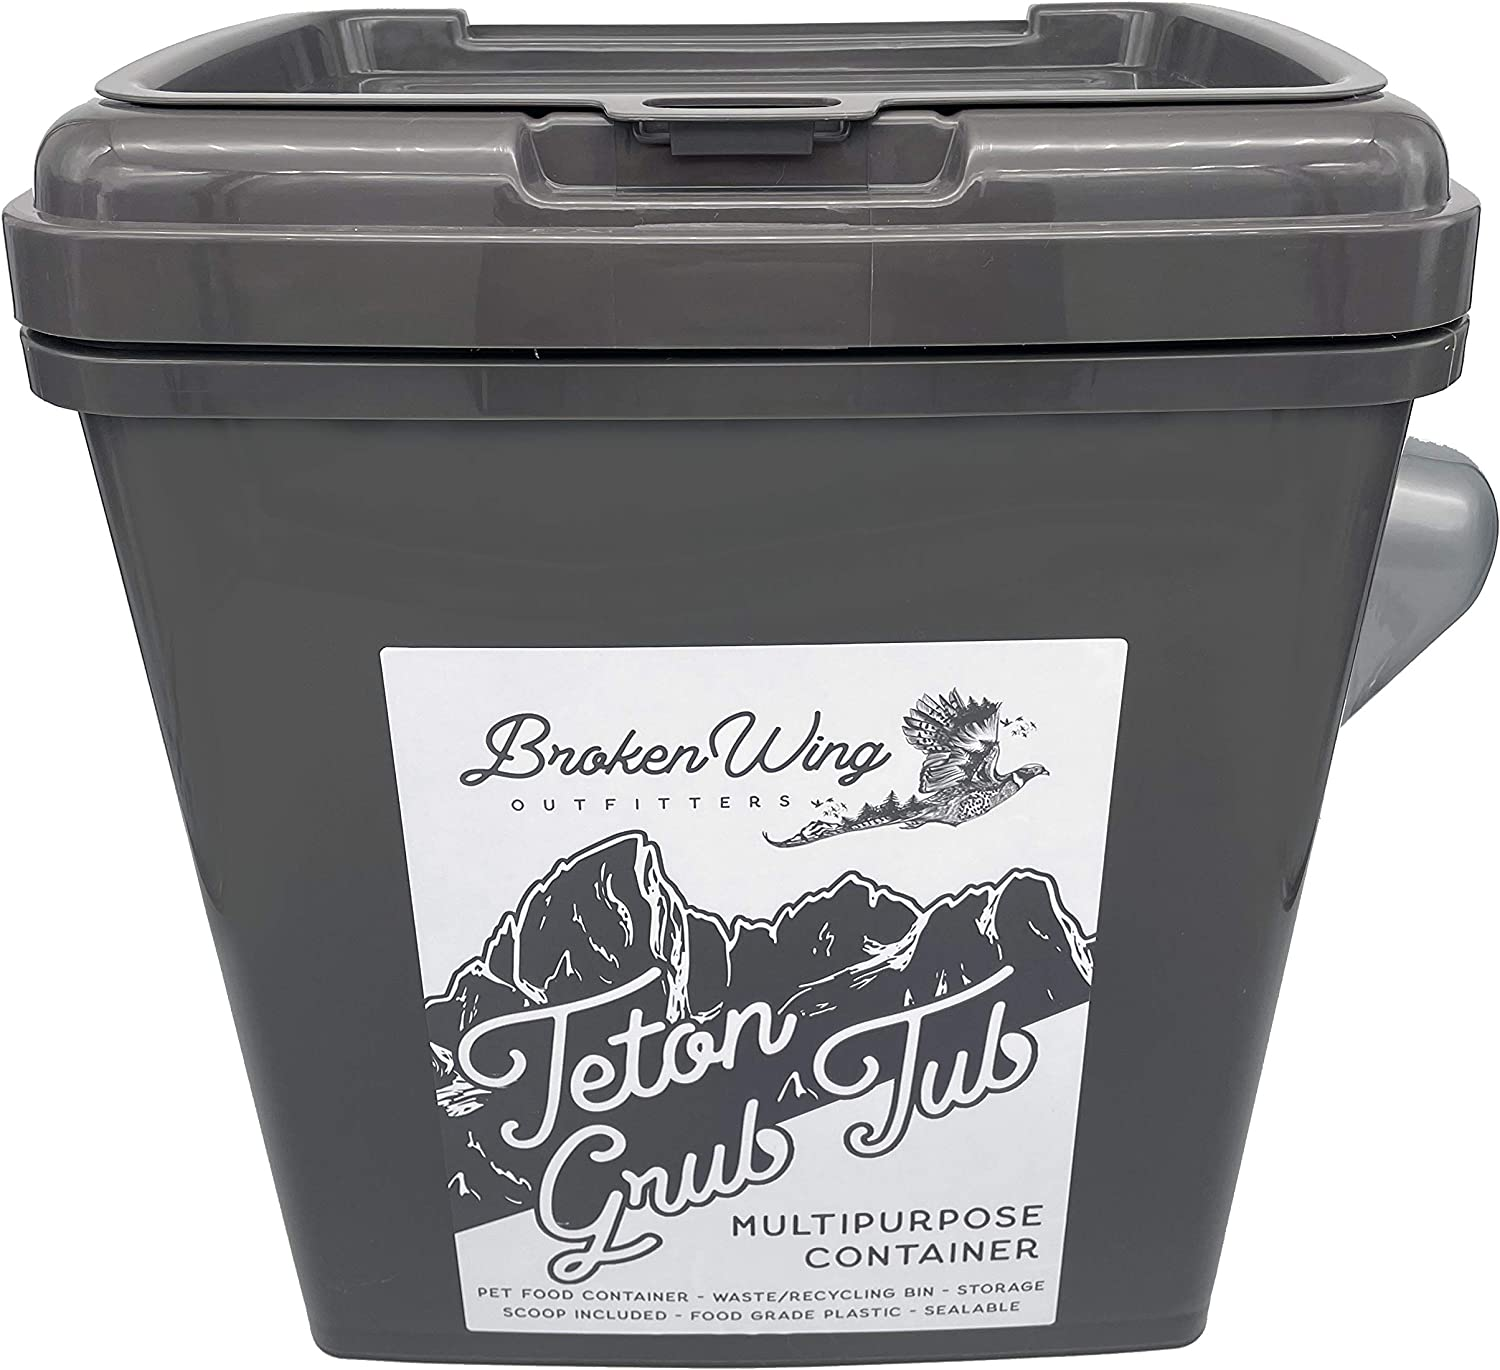 Drunkin Skull Teton Grub Tub Large Airtight Pet Food Container with Scoop - 45lb Capacity with Wheels